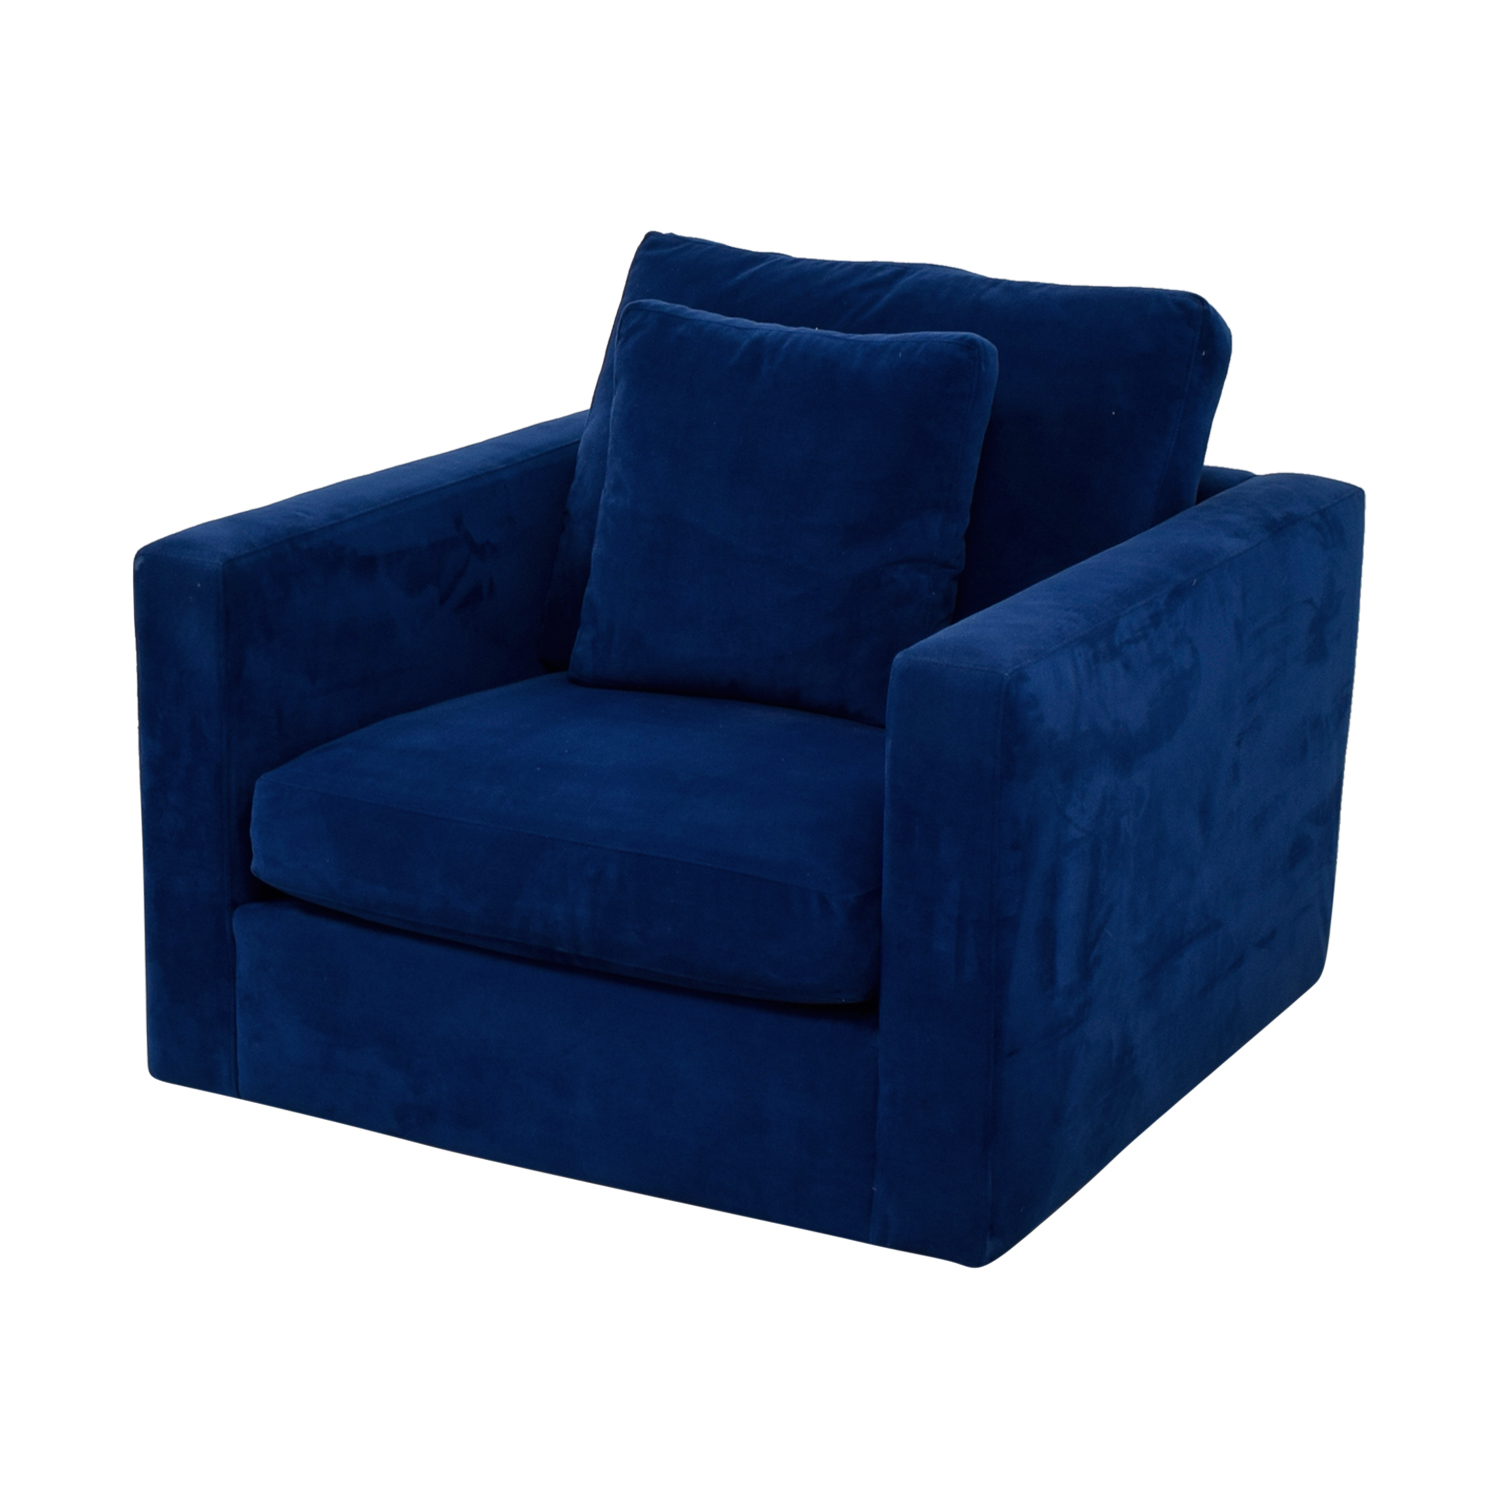 Blue Arm Chair with Toss Pillow second hand